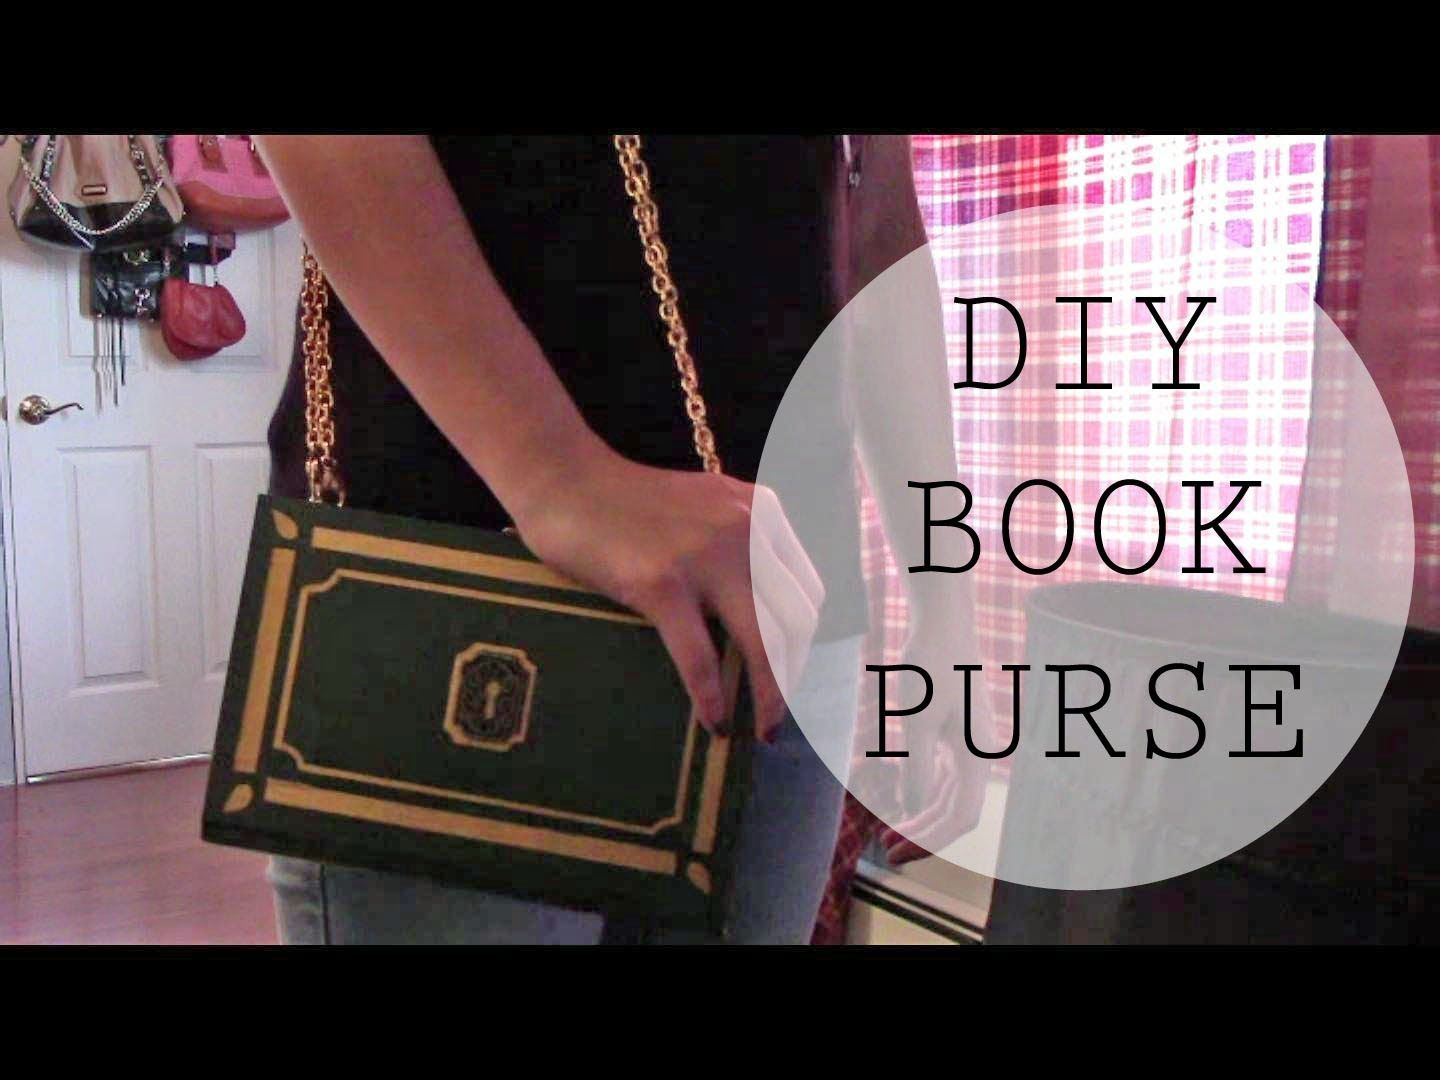 Check out my tutorial on how to turn a book into a book purse, clutch, and secret storage! It's cute, fashionable, and makes for a great gift for those book lovers!